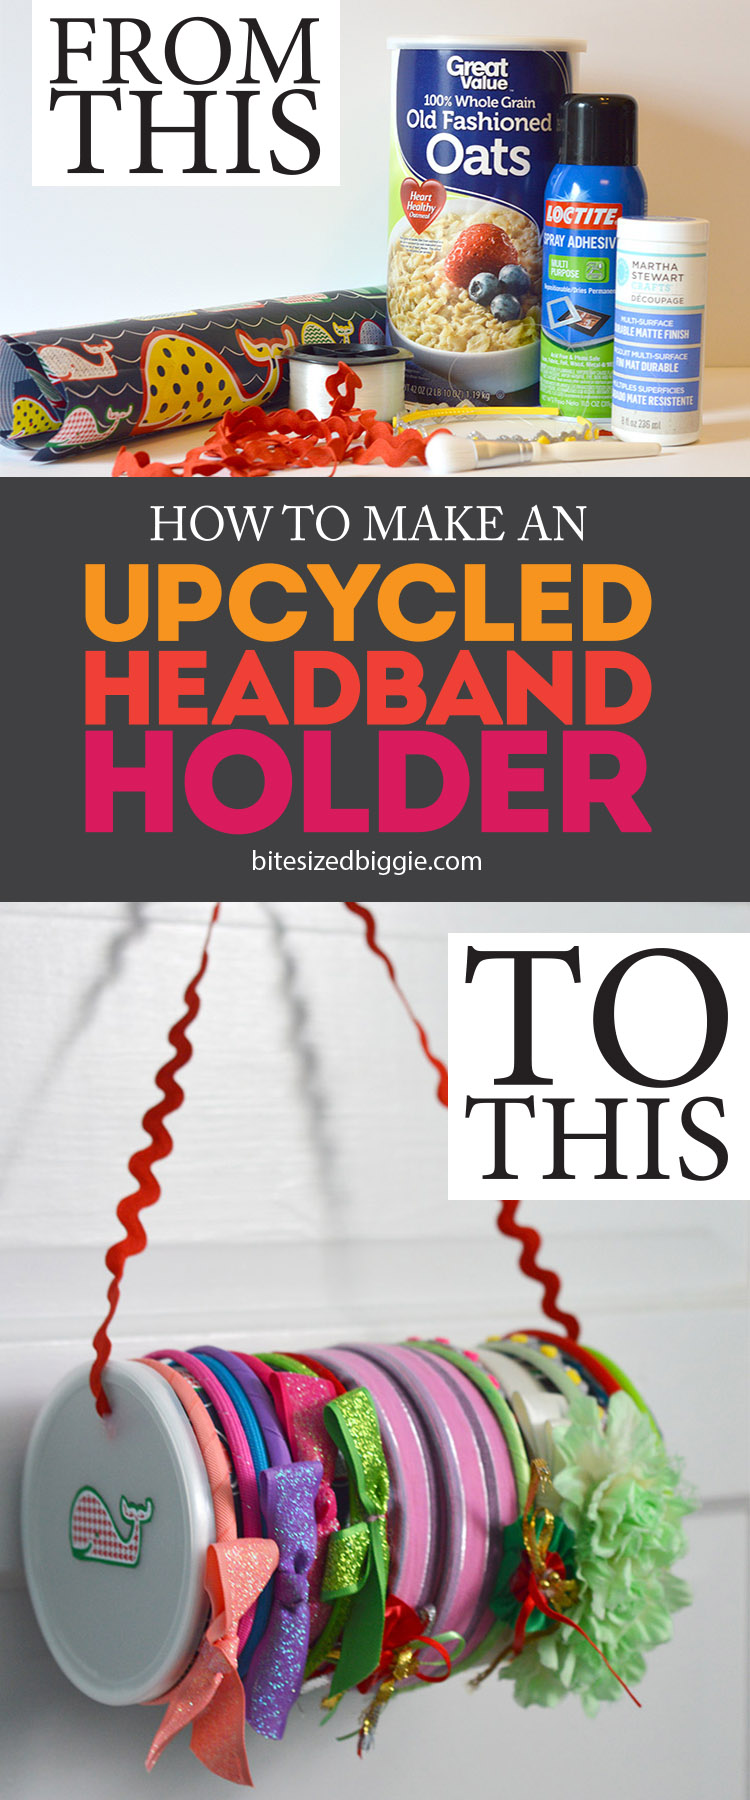 How to make an upcycled headband holder - this simple craft holds headbands on the outside and holds tons of smaller hair accessories inside!